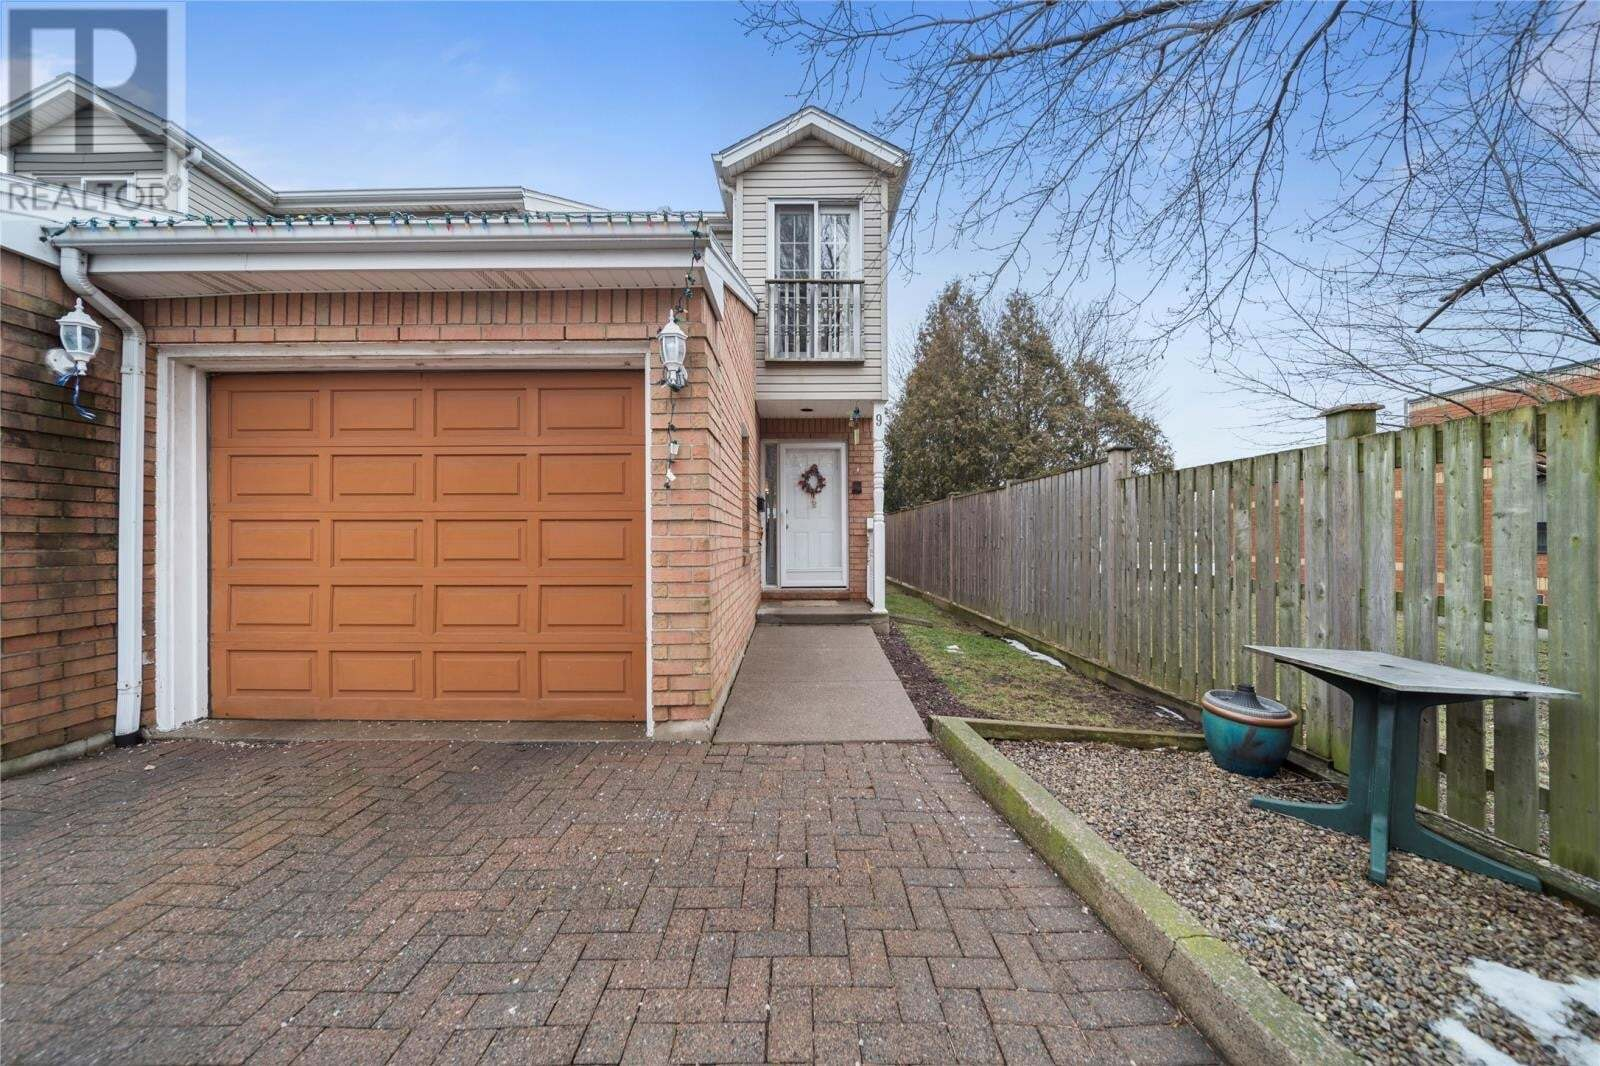 Townhouse for sale at 1185 Grand Marais Rd West Unit 9 Windsor Ontario - MLS: 20006025